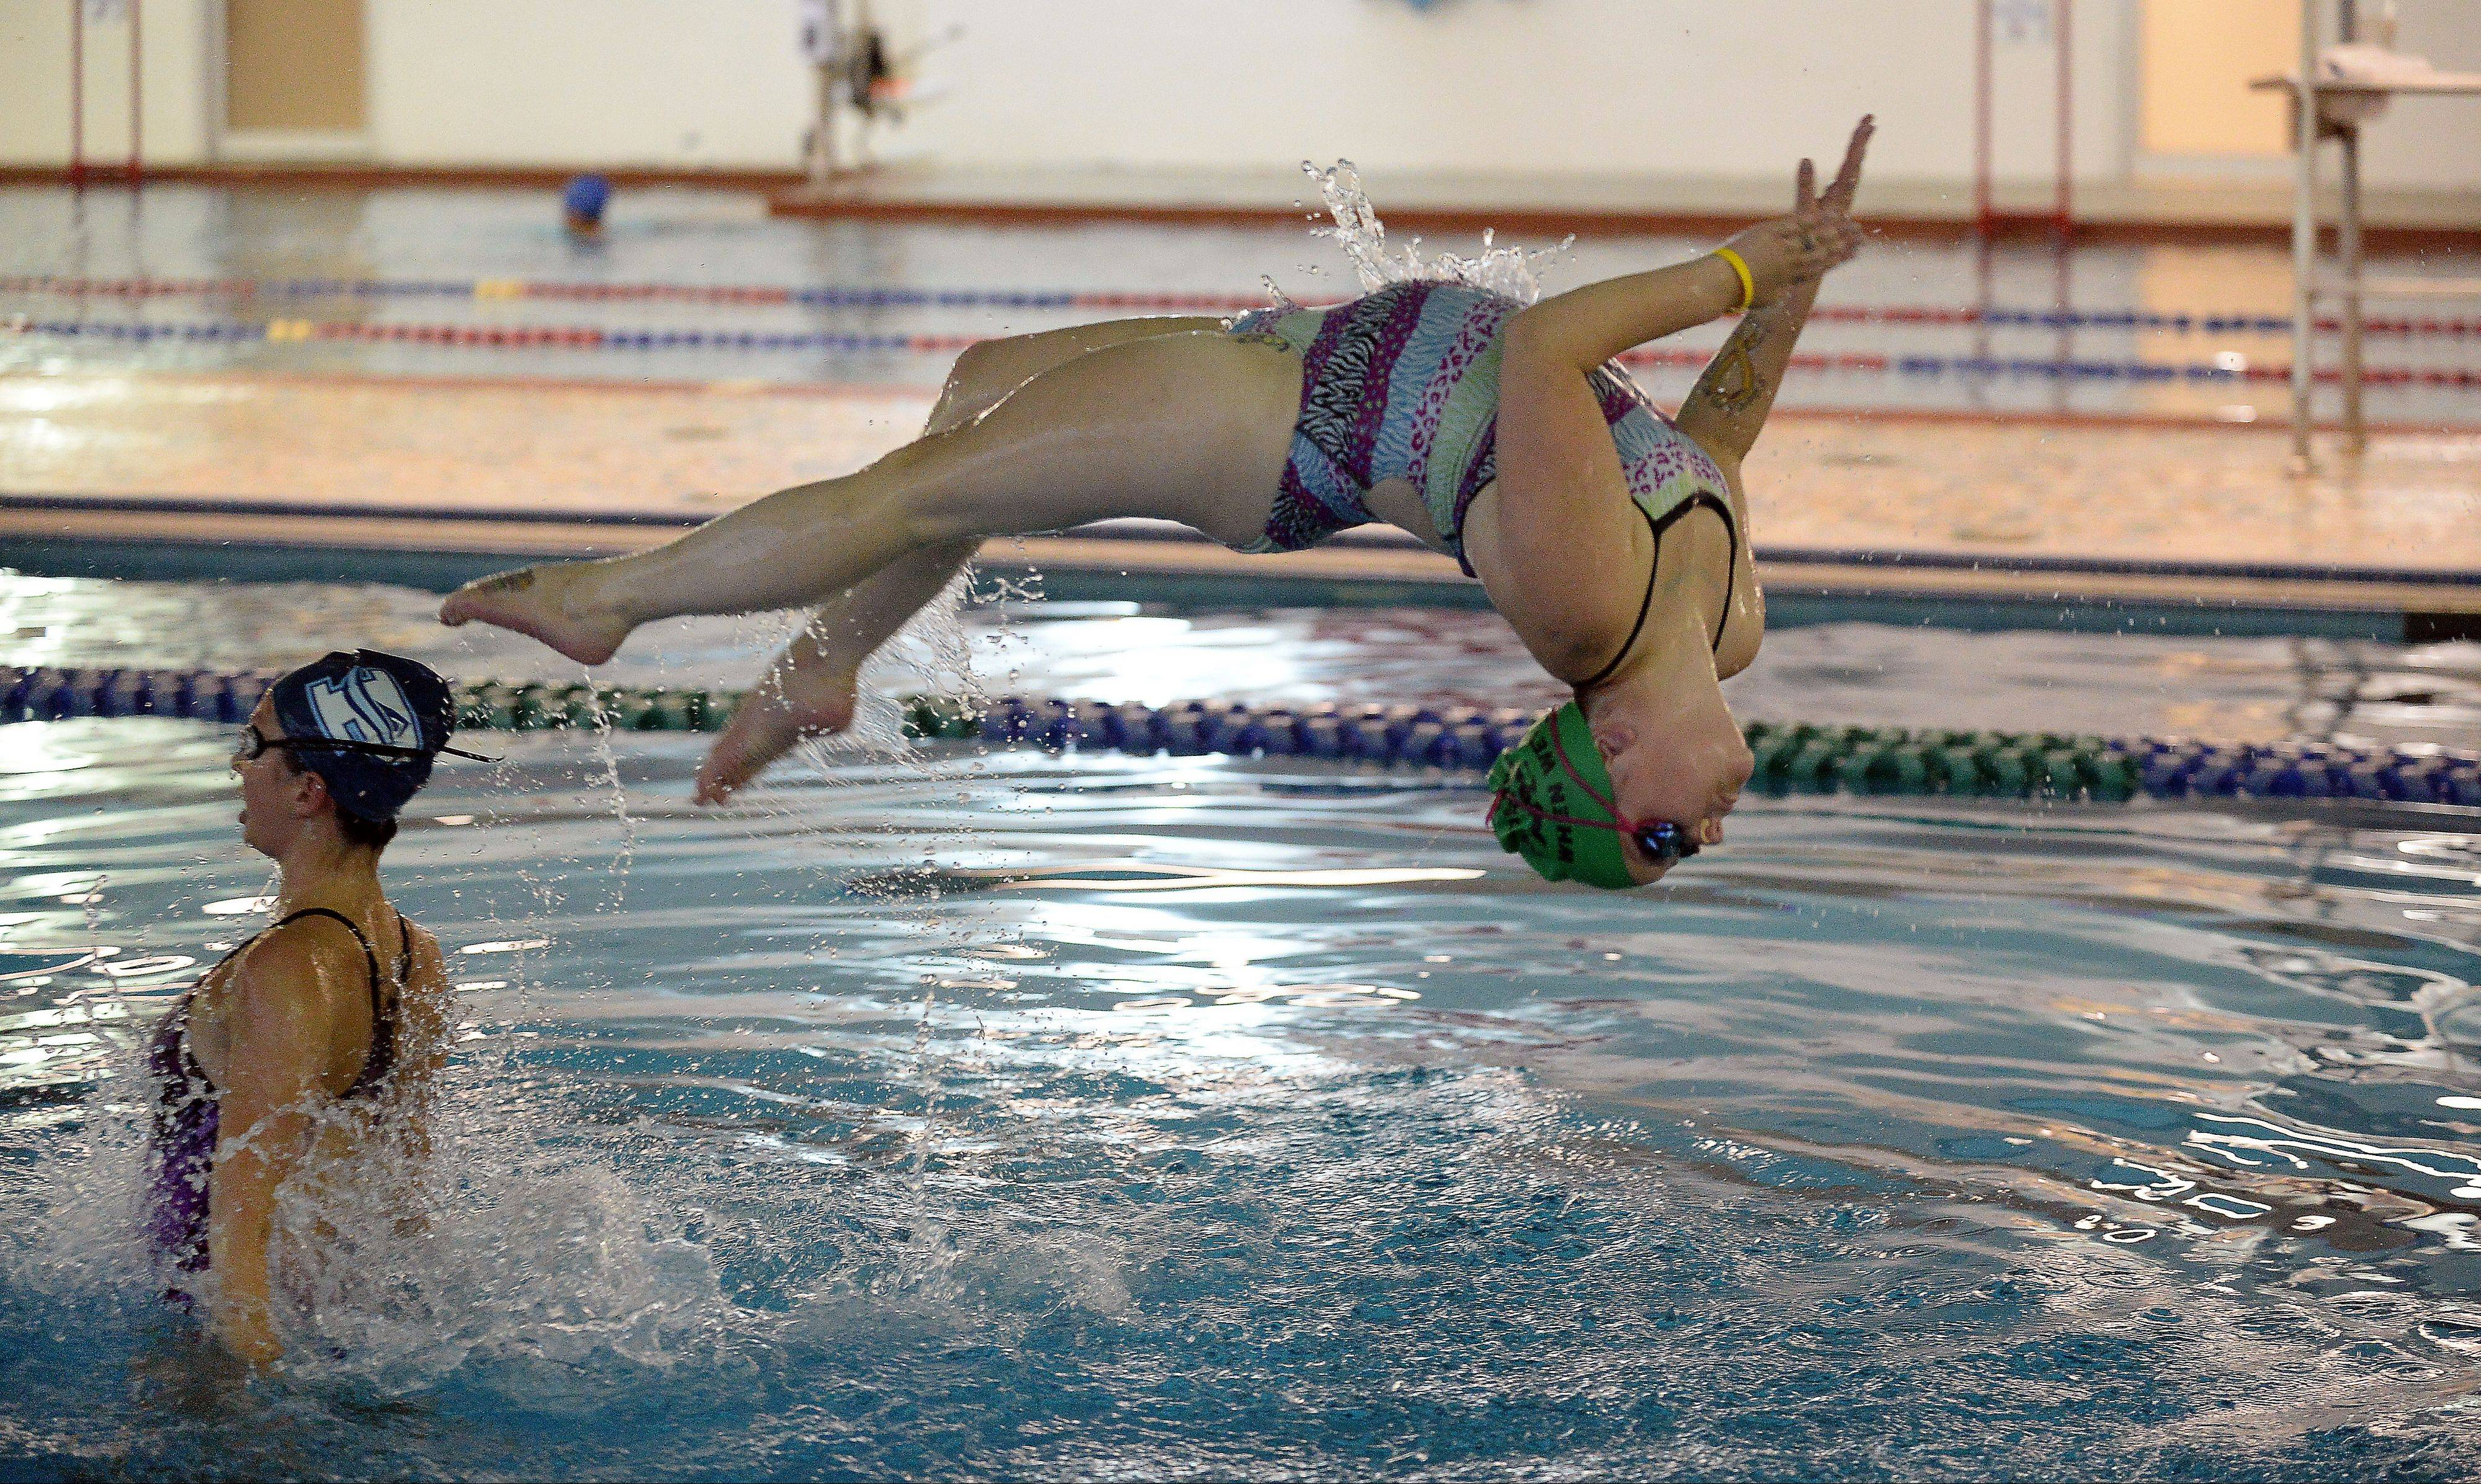 Nina Hart, 24, of Des Plaines practices her synchronized swimming as part of the AquaSprites at the Lattof YMCA.